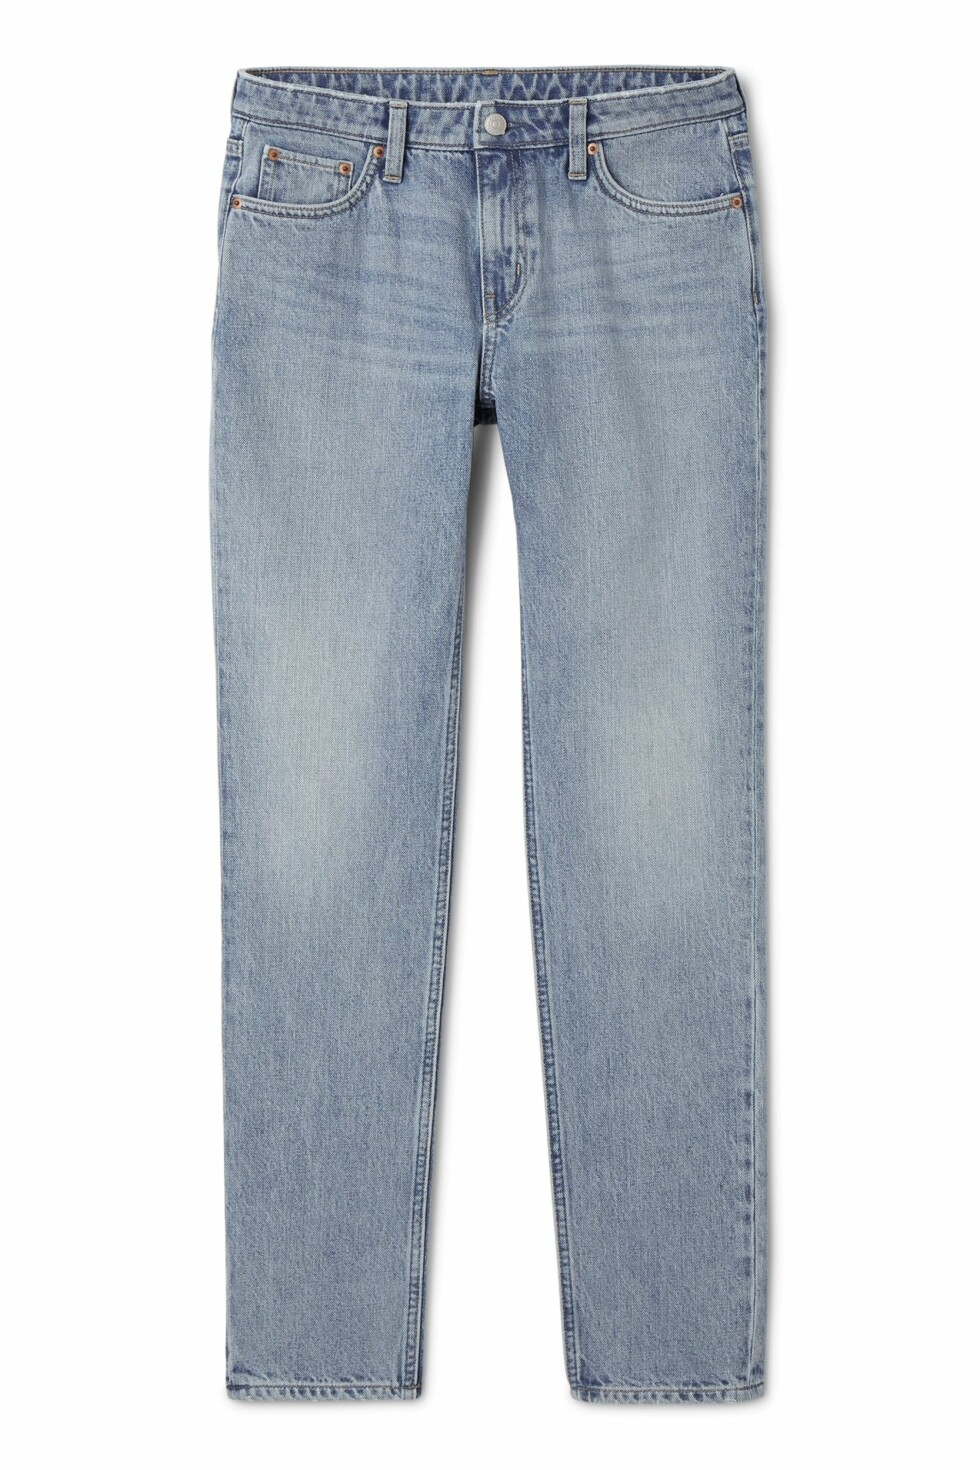 Jeans fra Weekday | kr 400 | http://shop.weekday.com/gb/Womens_shop/New_arrivals/Beat_Wow_Blue/1342358-11291796.1?image=1328240#c-47958#Rel?PC=1328240#c